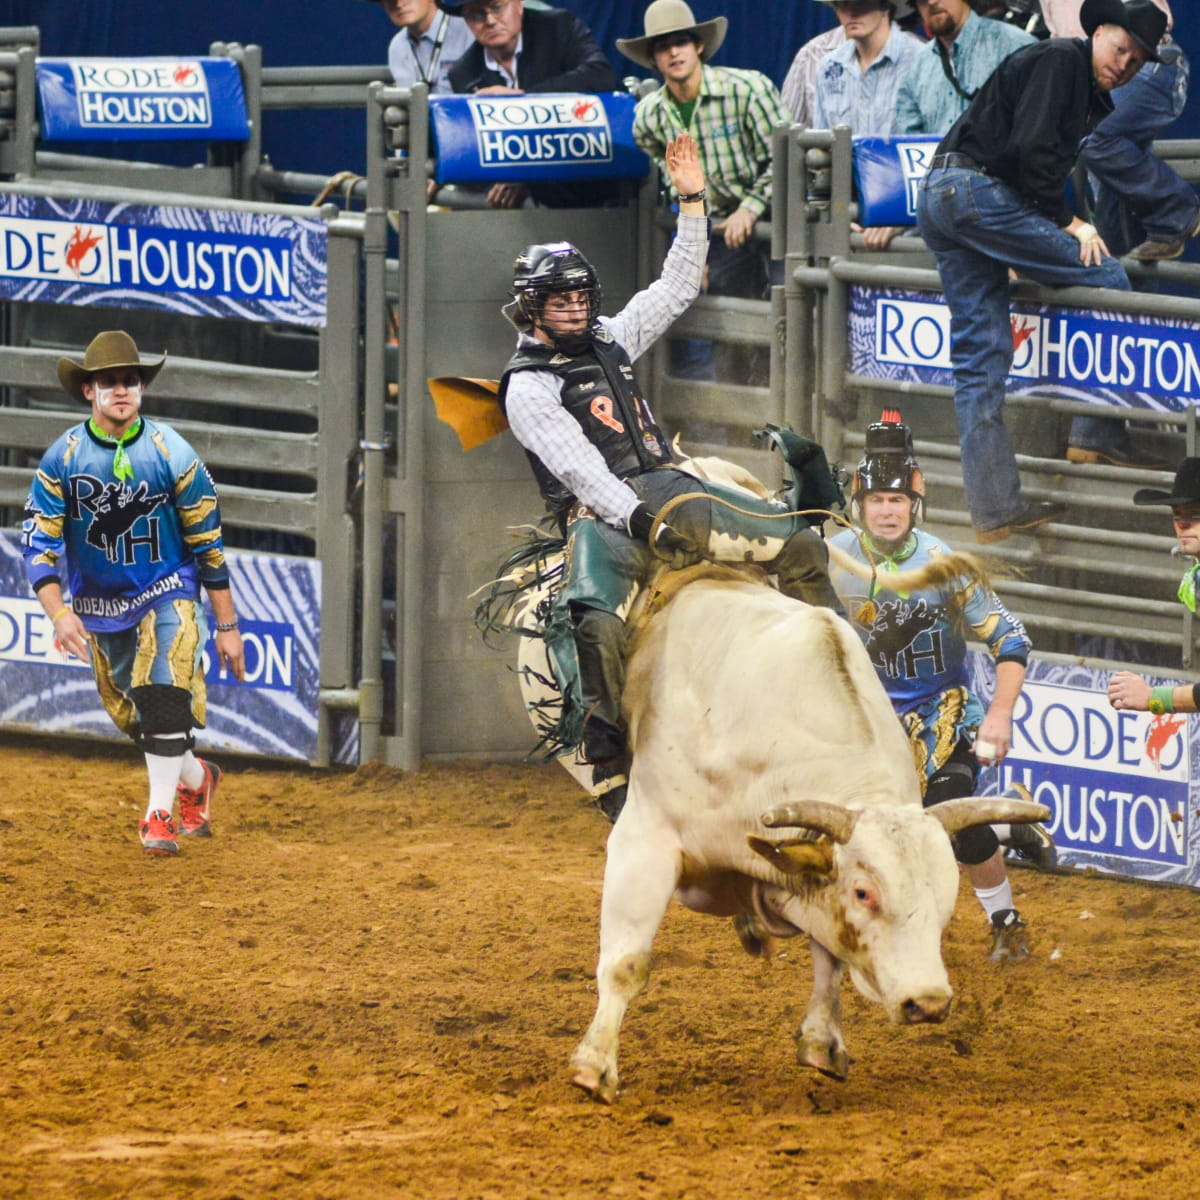 7 RodeoHouston rodeo extras bullfighters March 2014